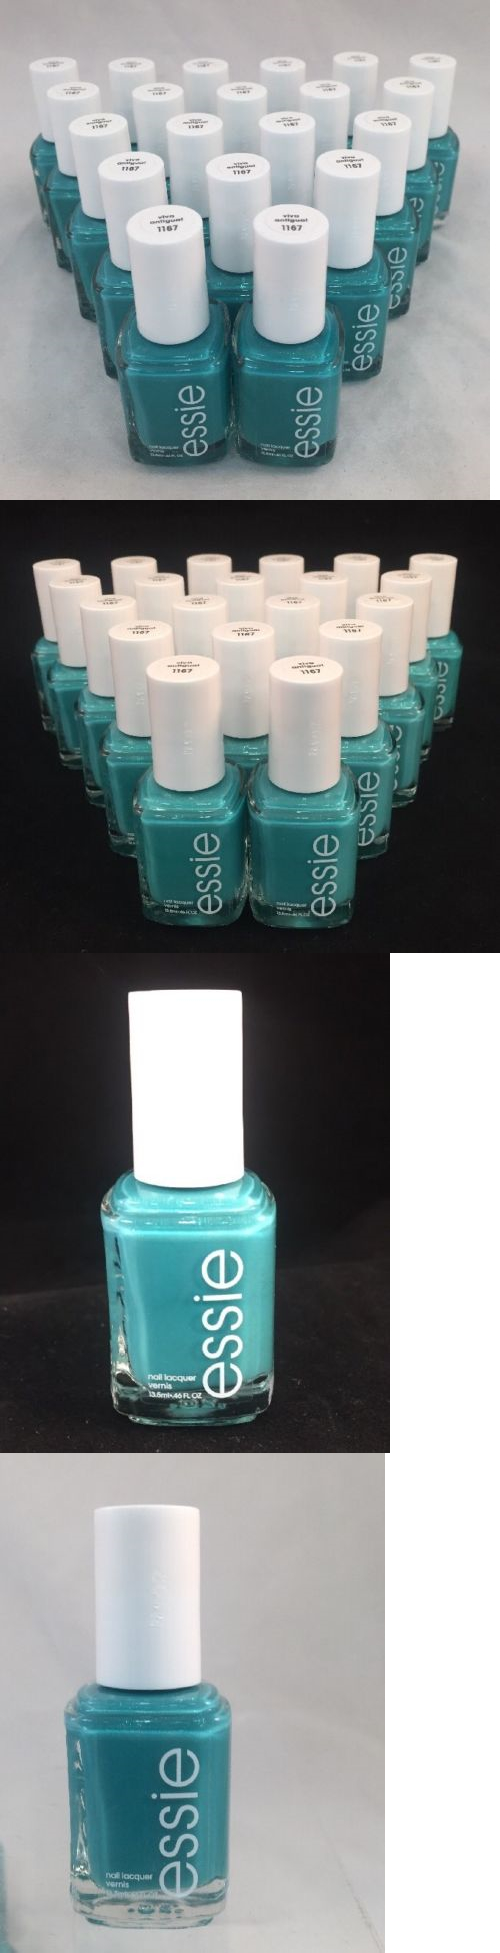 Nail Polish: 20 Essie Bulk Nail Polish Iridescent Crystalline Turquoise Shower Party Favor -> BUY IT NOW ONLY: $59.99 on eBay!